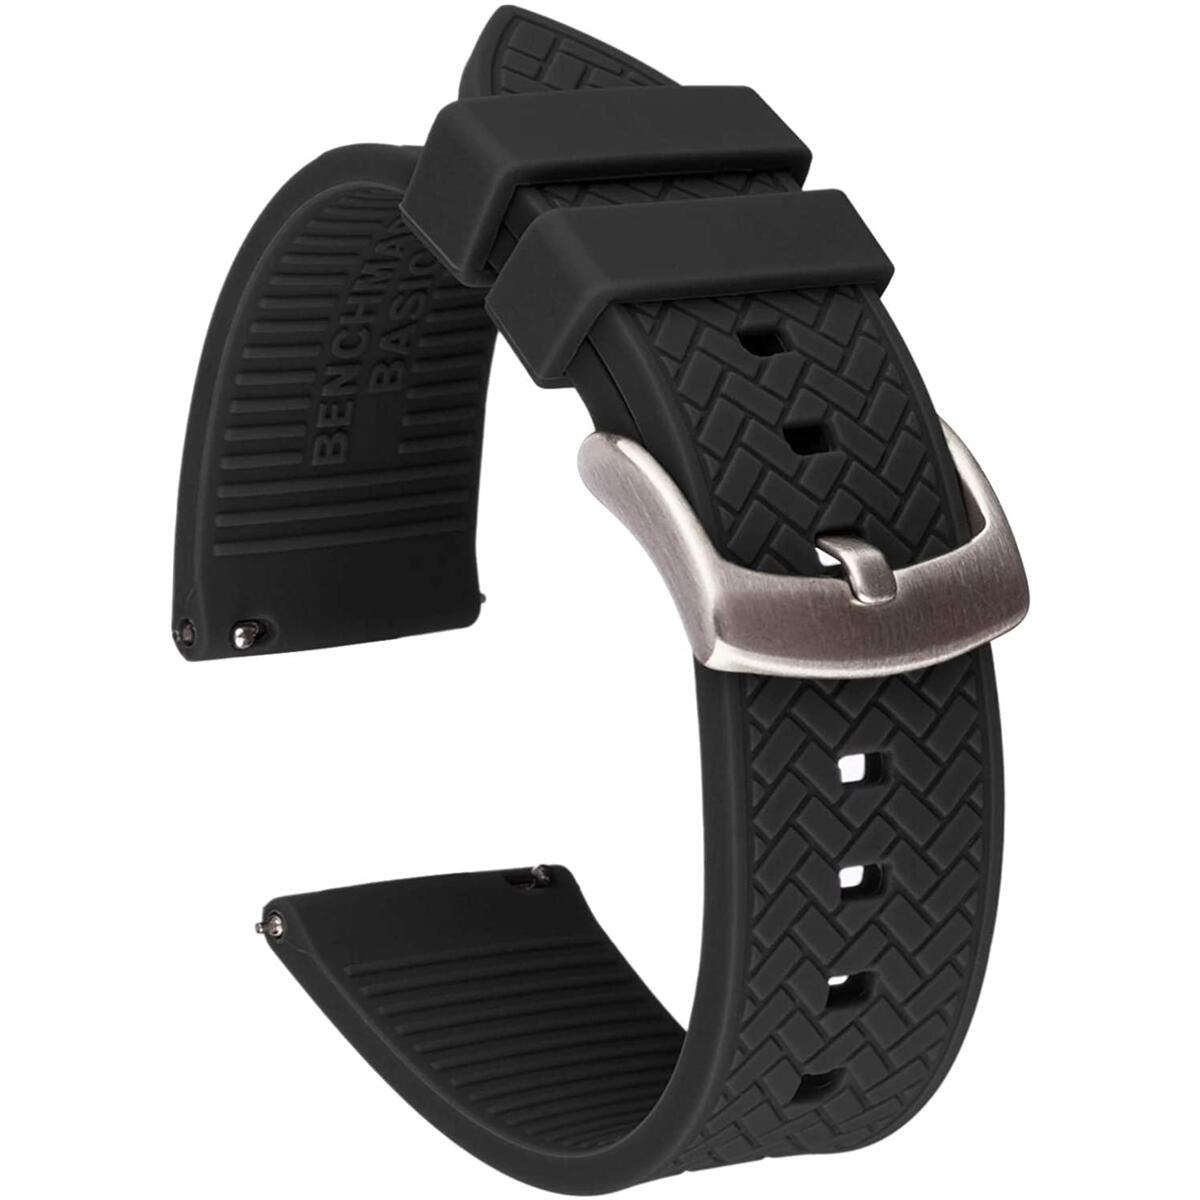 22mm Herringbone Pattern Silicone Quick Release Watch Band - Black, Navy Blue or Grey